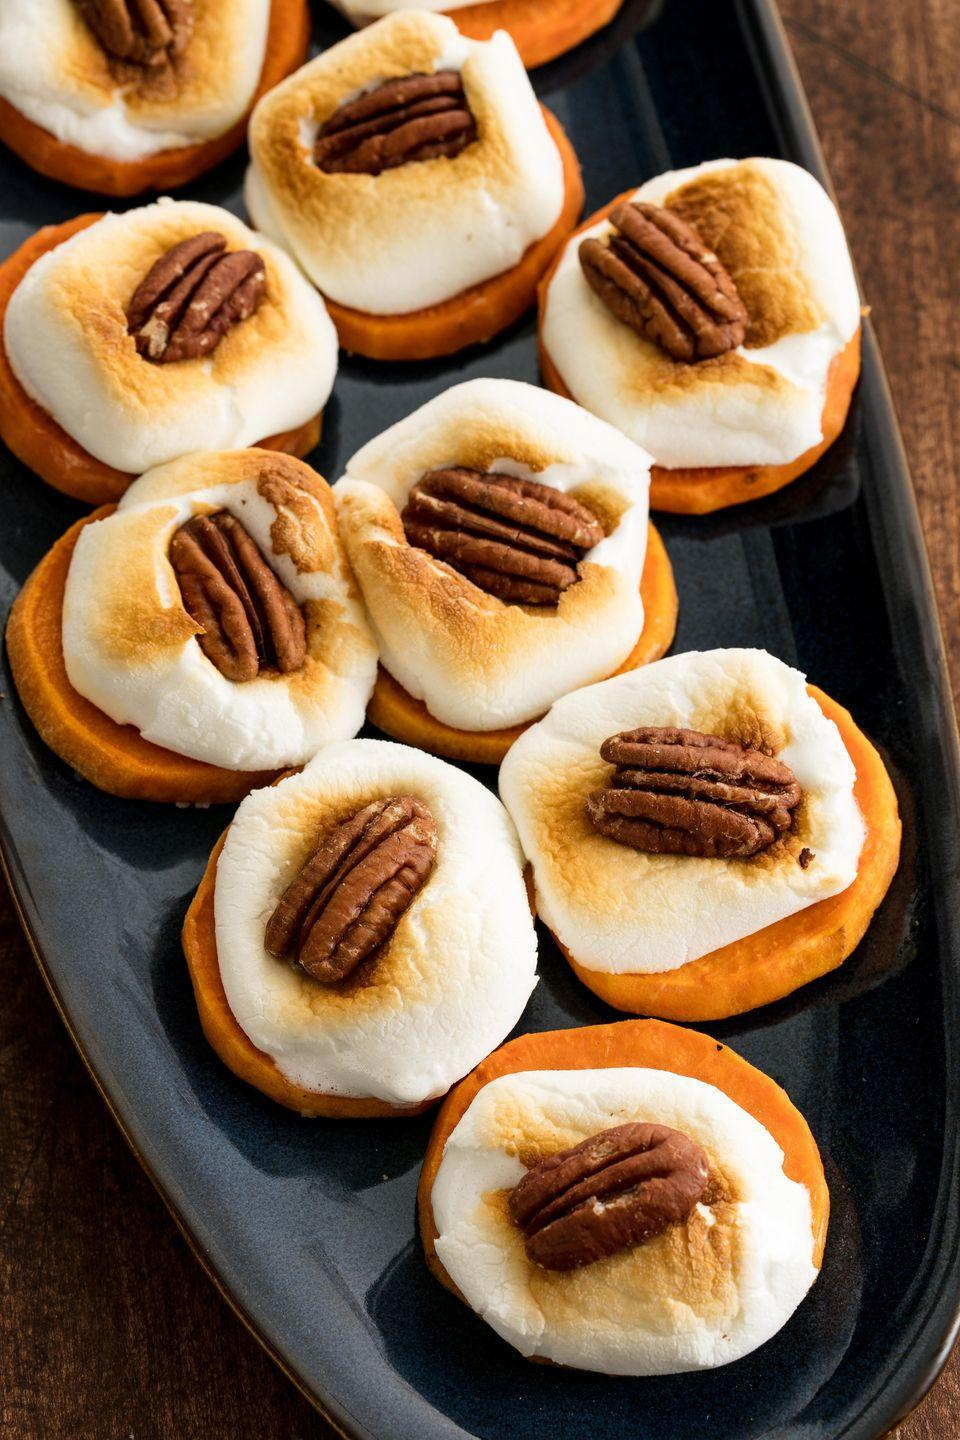 "<p>Turn the classic casserole into a mini dessert!</p><p>Get the recipe from <a href=""/cooking/recipe-ideas/recipes/a50000/sweet-potato-bites-recipe/"" data-ylk=""slk:Delish"" class=""link rapid-noclick-resp"">Delish</a>.</p><p><strong><a class=""link rapid-noclick-resp"" href=""https://www.amazon.com/Cuisinart-Classic-Triple-8-Inch-C77TR-CF-25/dp/B00GIBK8RA/?tag=syn-yahoo-20&ascsubtag=%5Bartid%7C1782.g.2574%5Bsrc%7Cyahoo-us"" rel=""nofollow noopener"" target=""_blank"" data-ylk=""slk:BUY NOW"">BUY NOW</a><em> Cuisinart Classic Chef's Knife, $12, </em></strong><em><strong><span class=""redactor-unlink"">amazon.com</span></strong></em><br></p>"